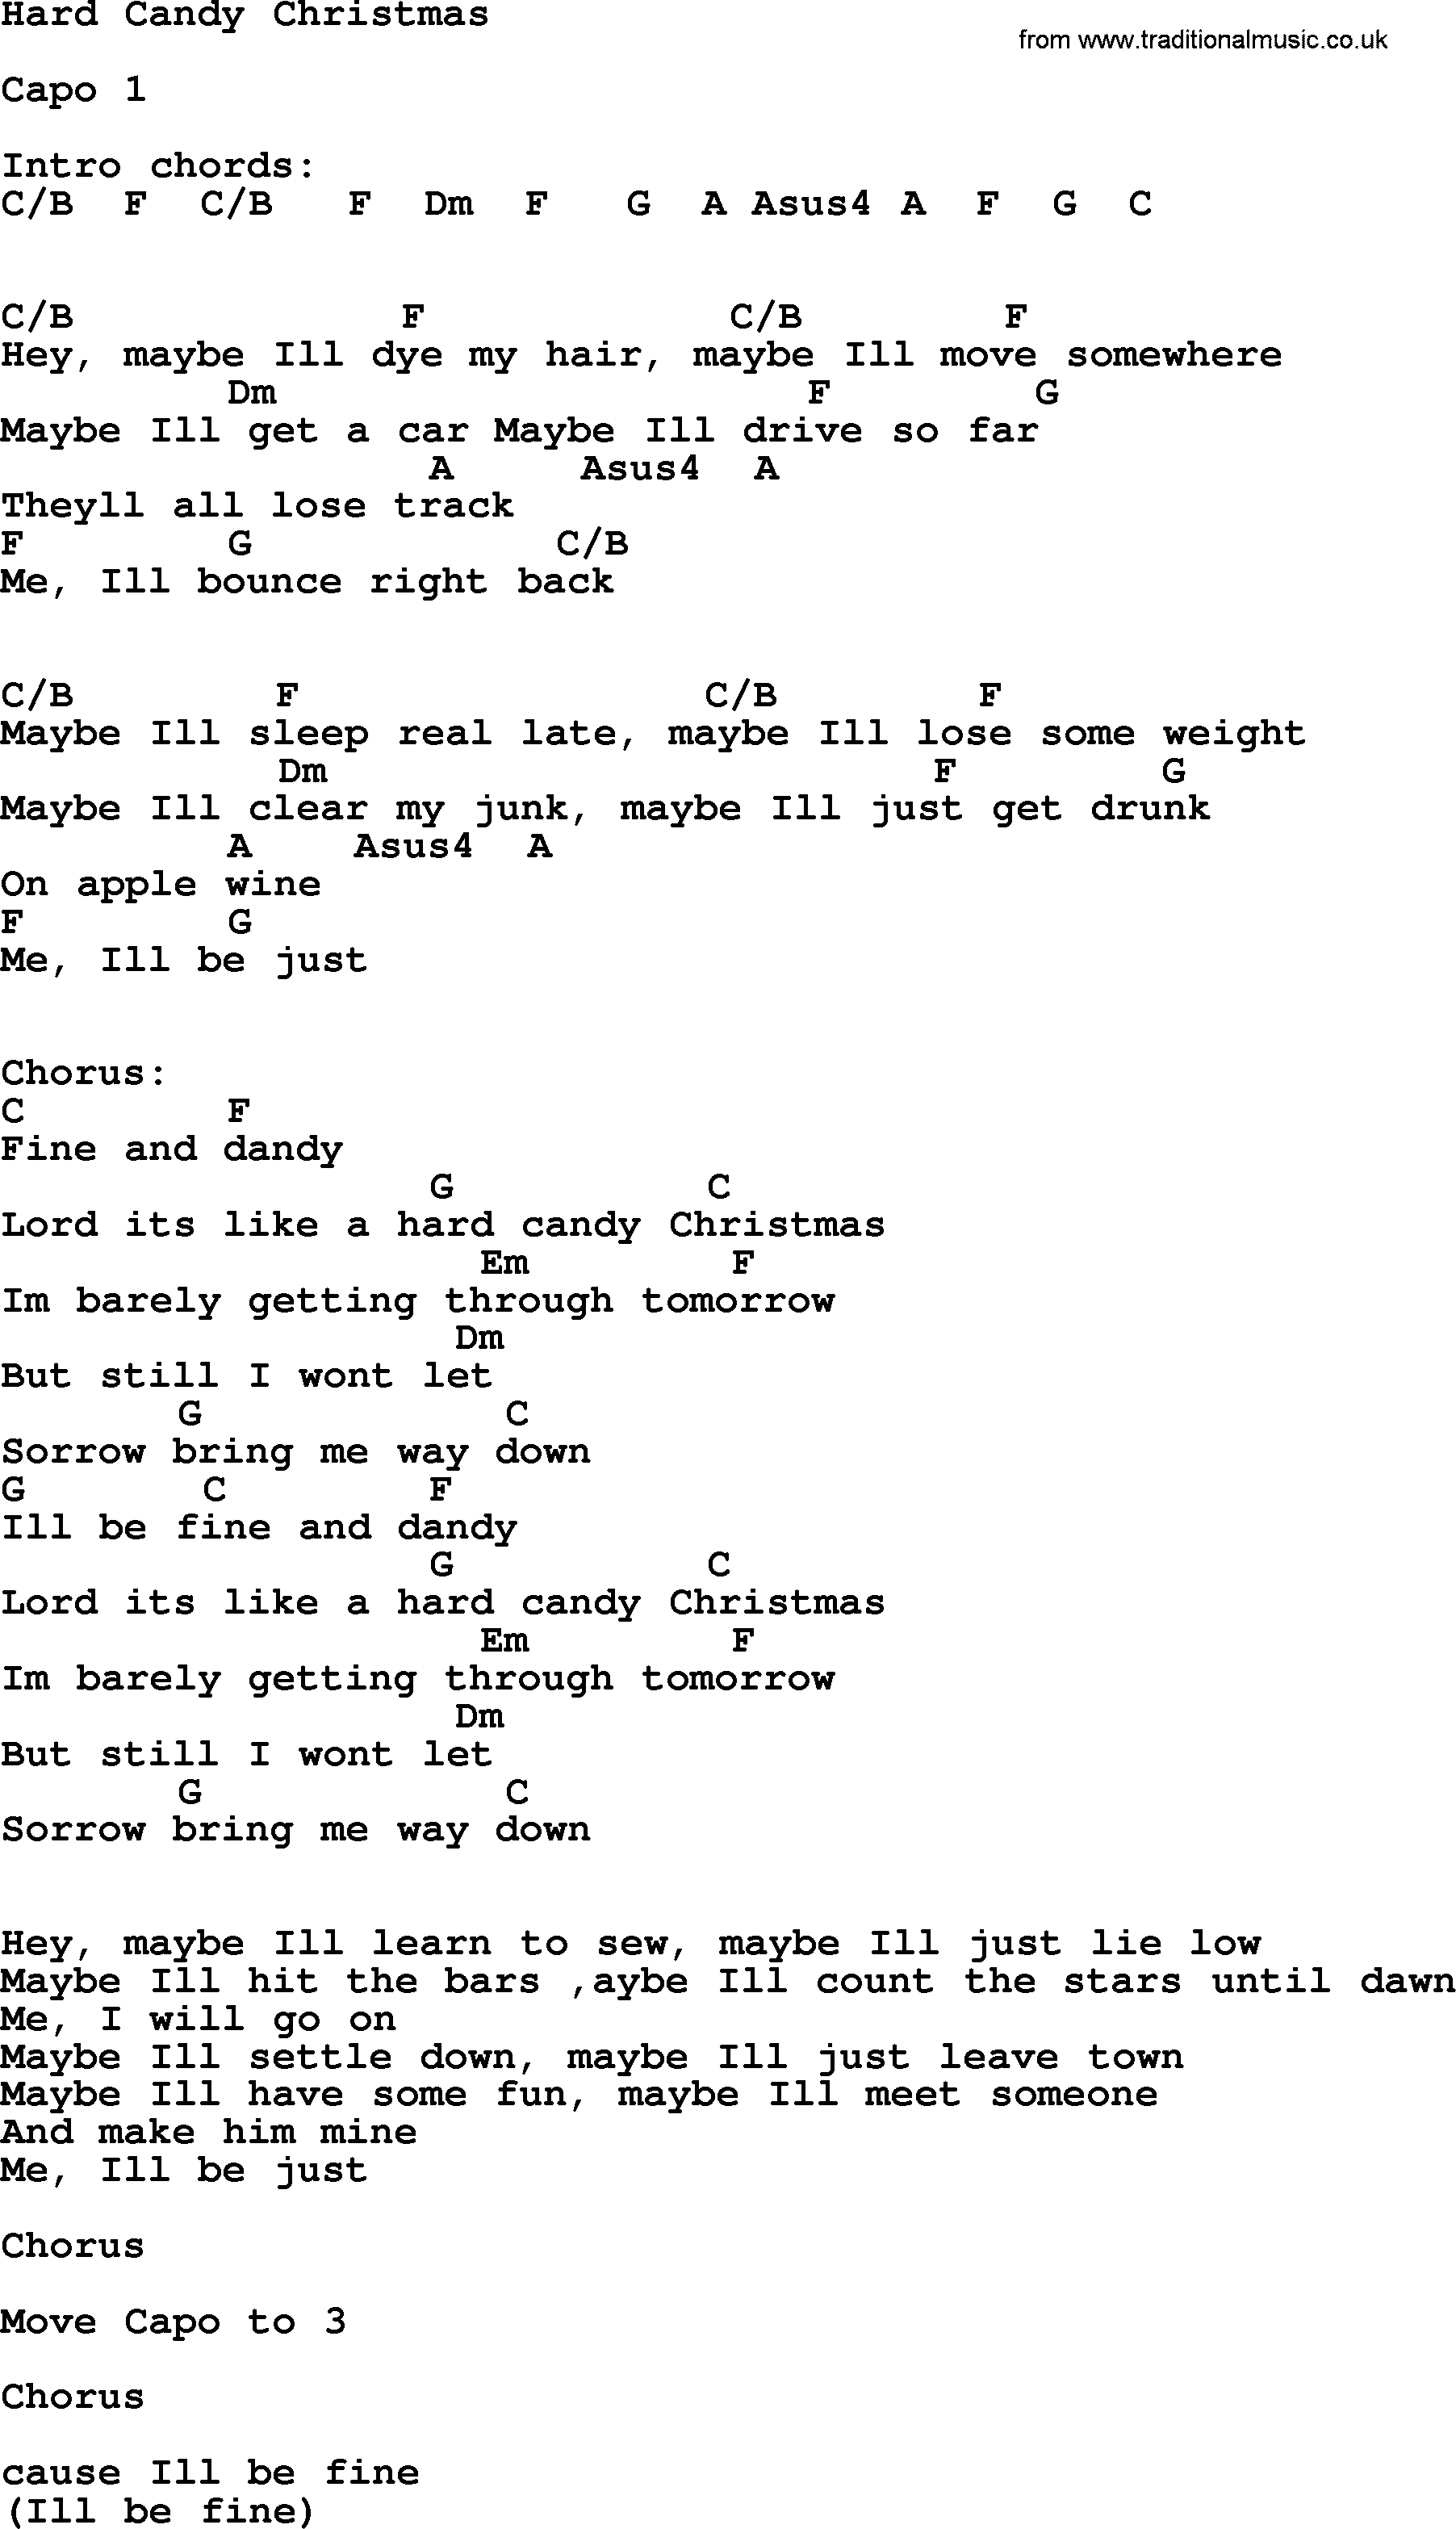 Ill Be Home For Christmas Chords.Dolly Parton Song Hard Candy Christmas Lyrics And Chords